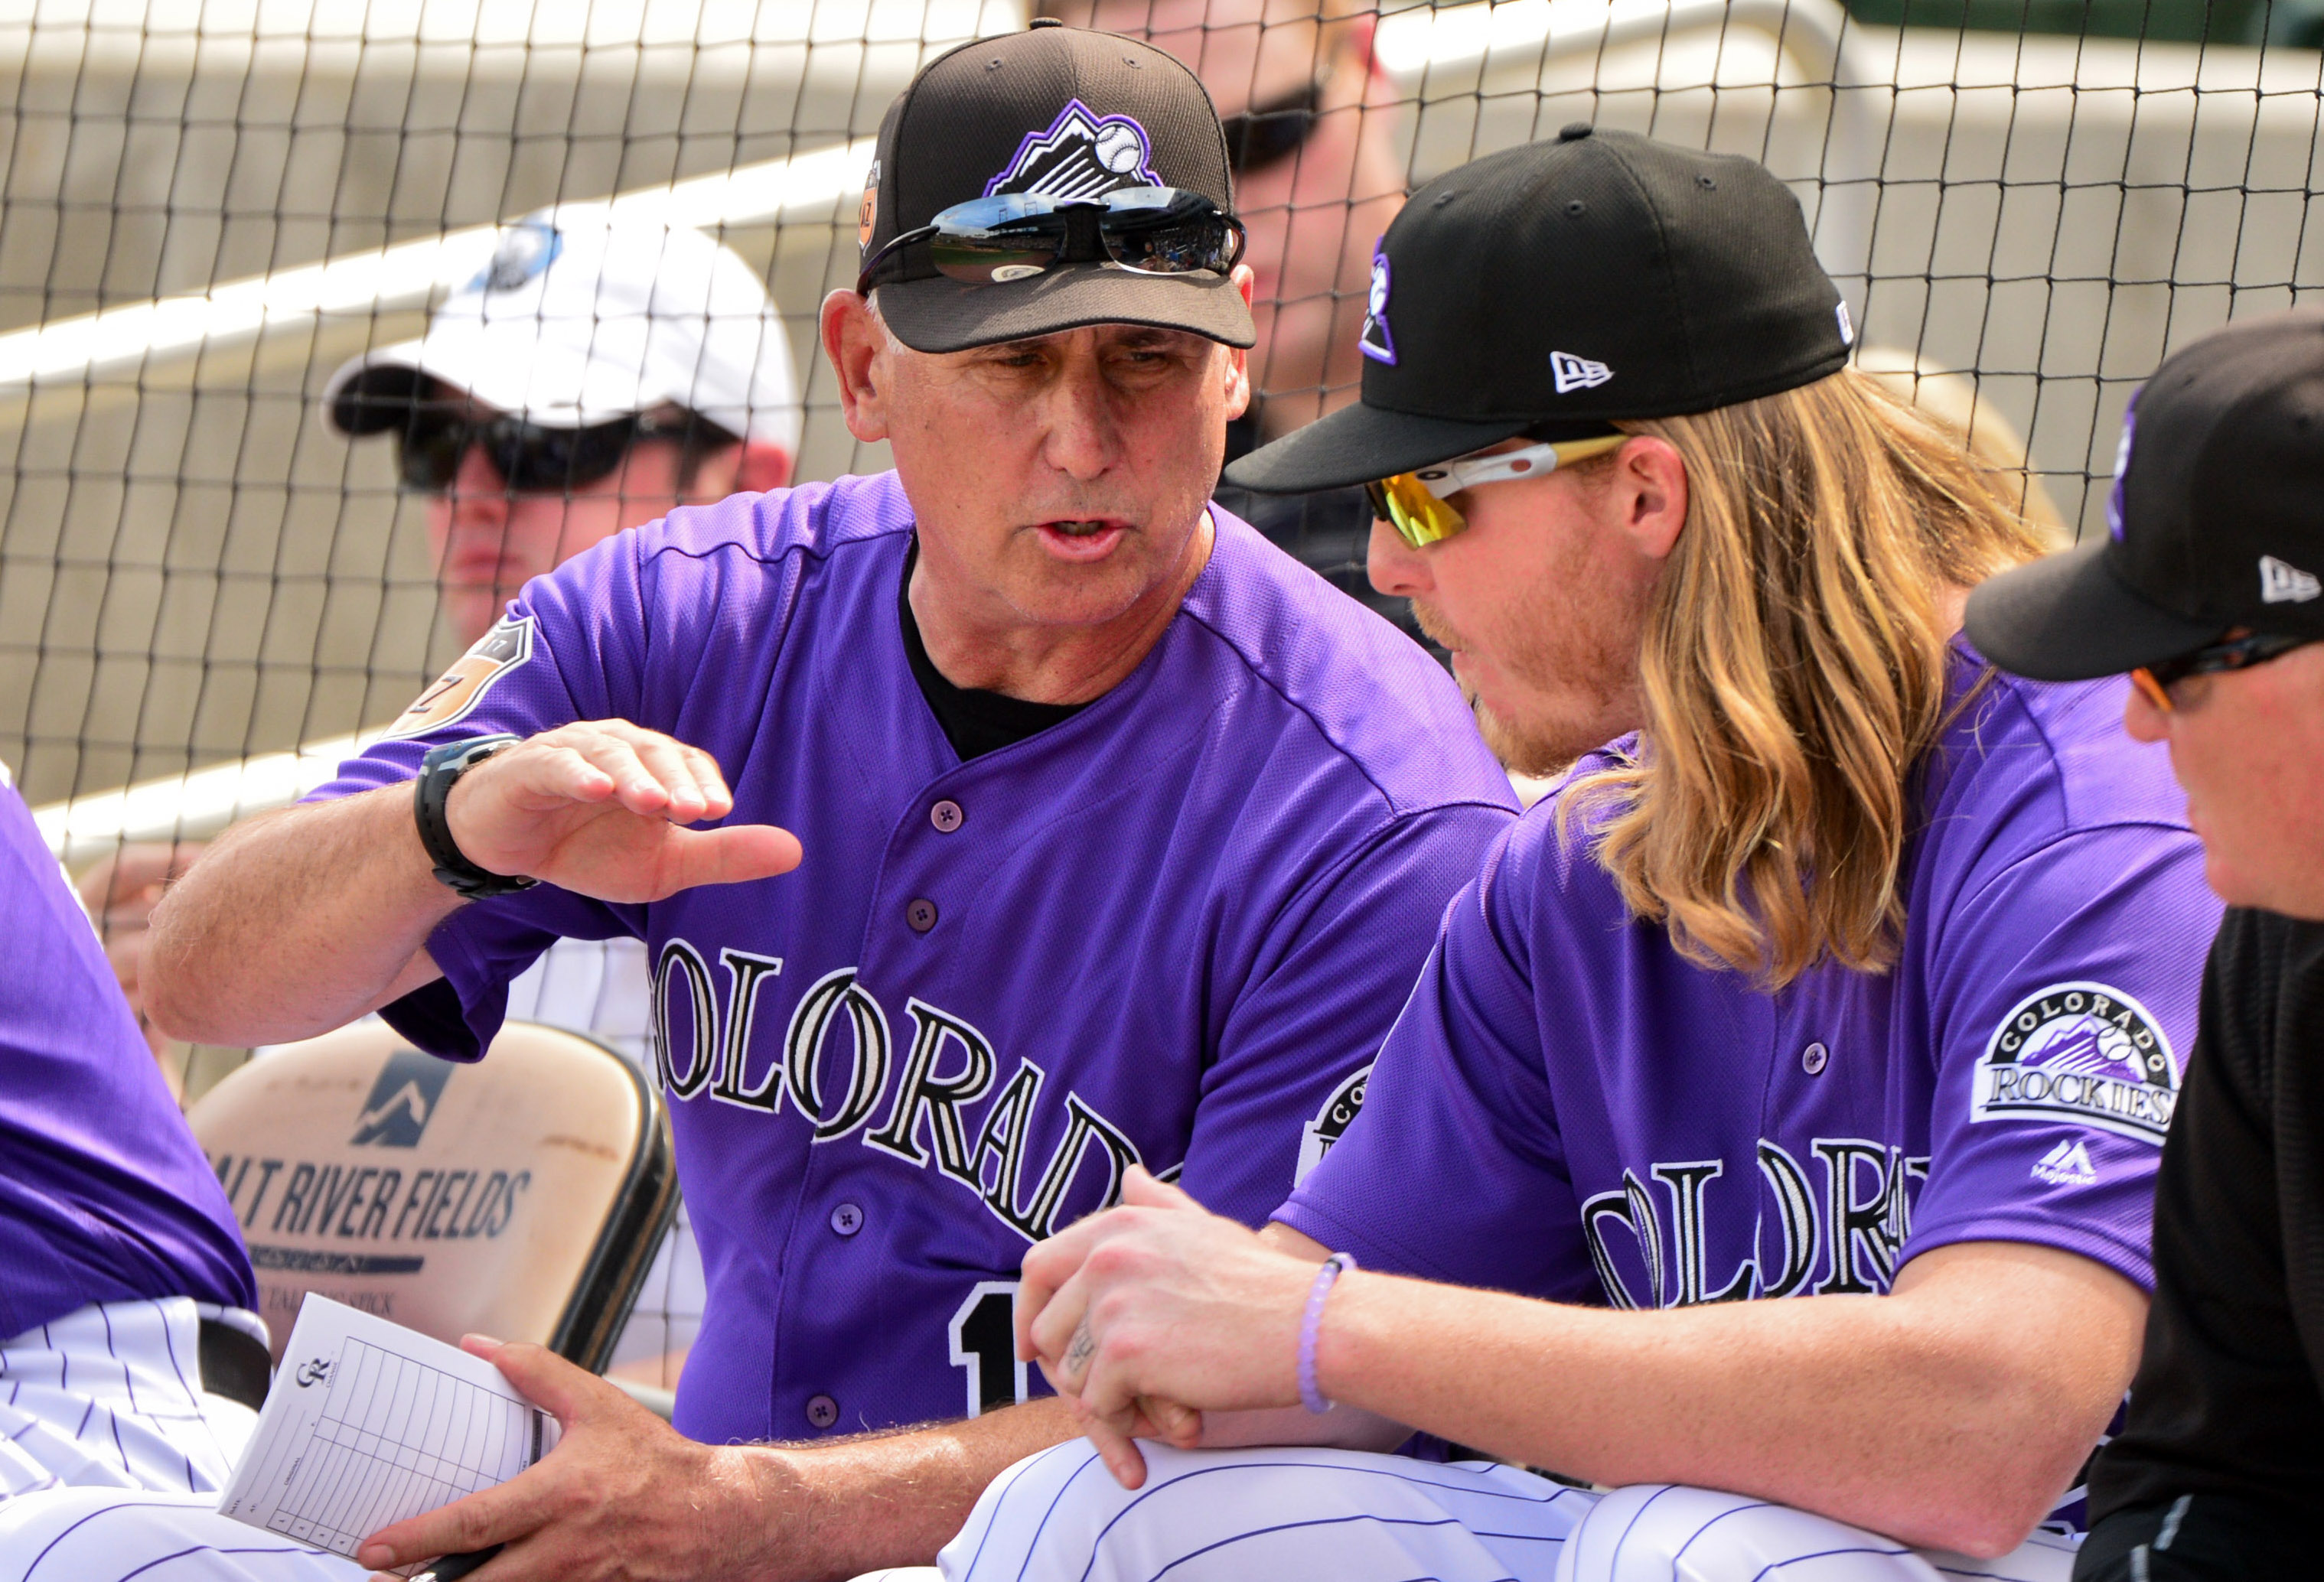 9945110-mlb-spring-training-milwaukee-brewers-at-colorado-rockies